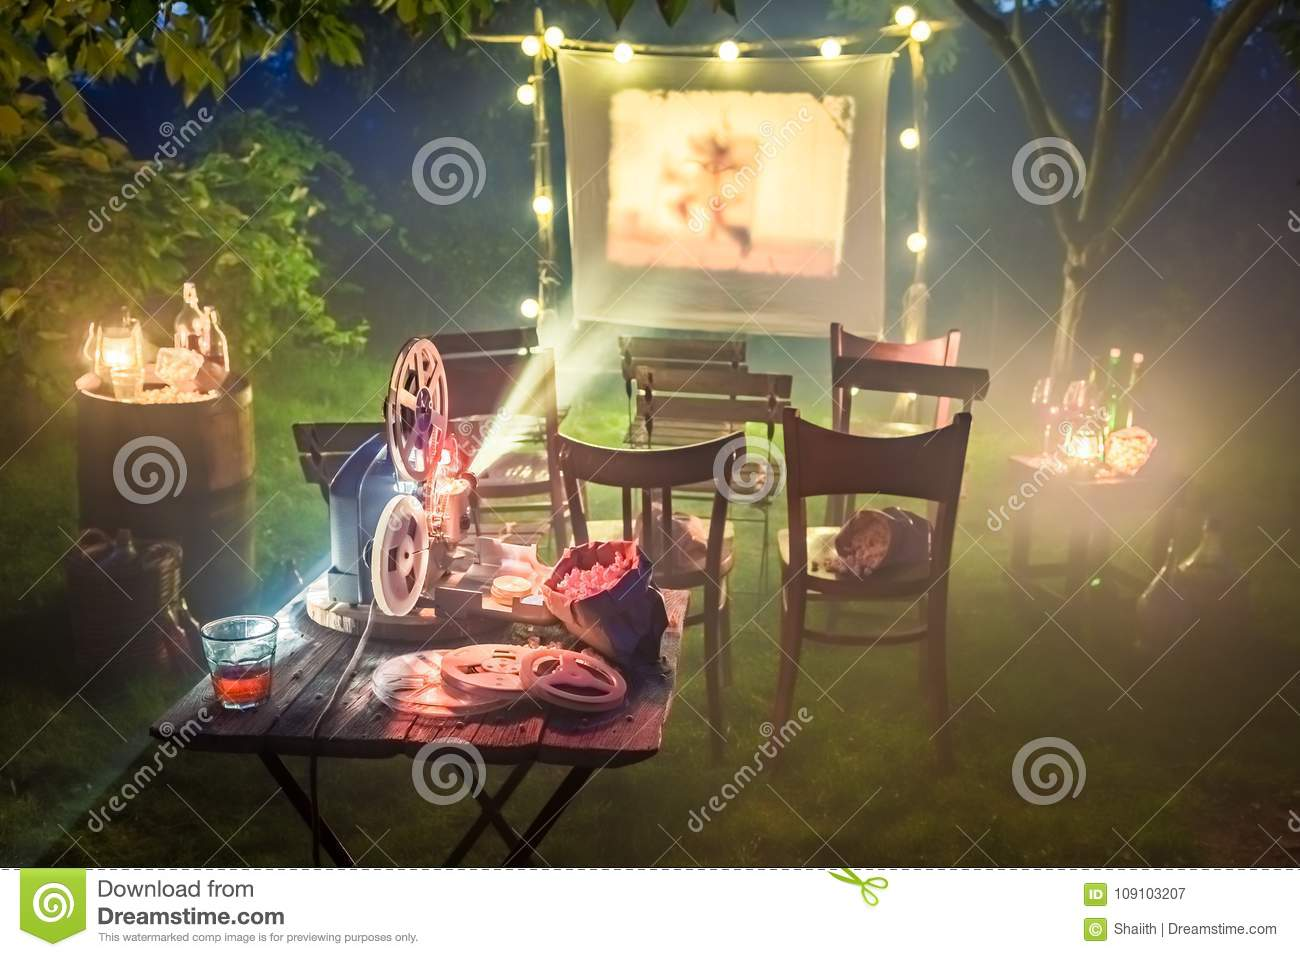 Small cinema with retro projector in the garden